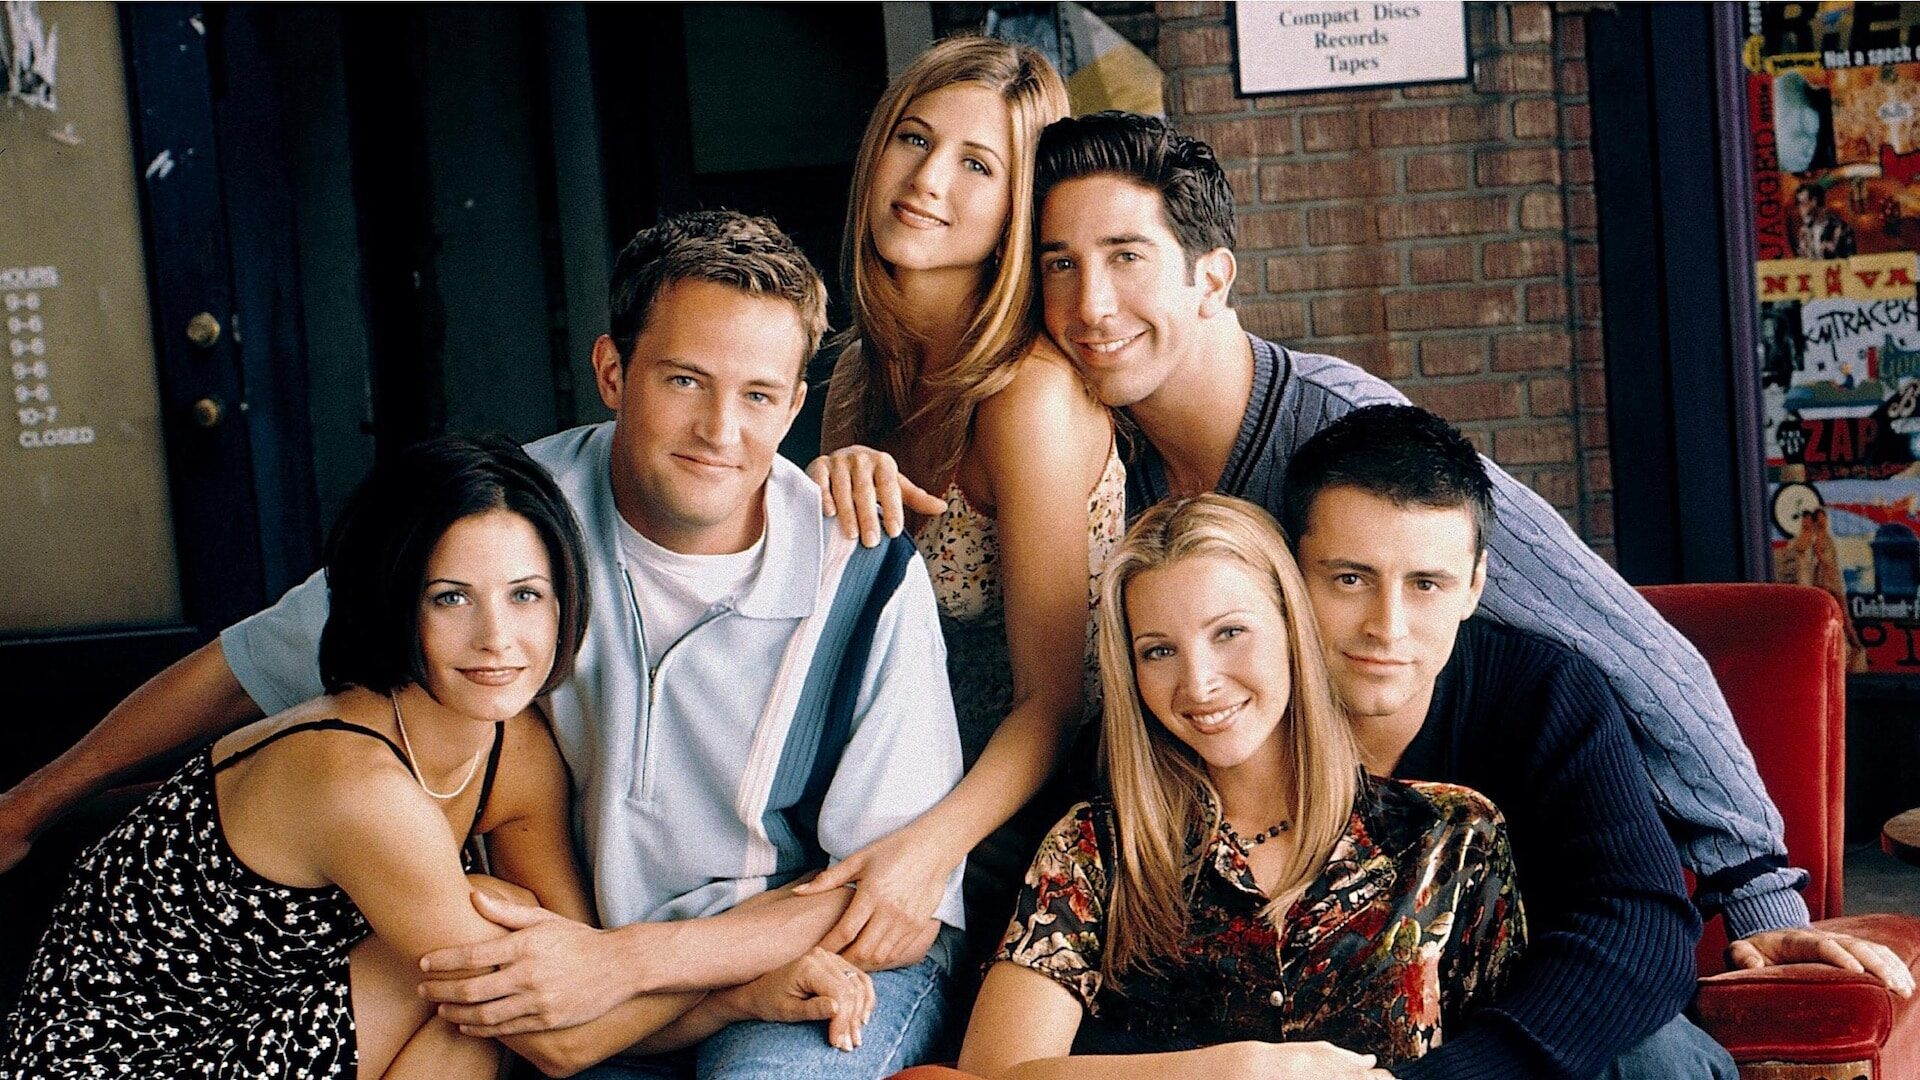 Friends: ufficiale la reunion su HBO Max con il cast originale